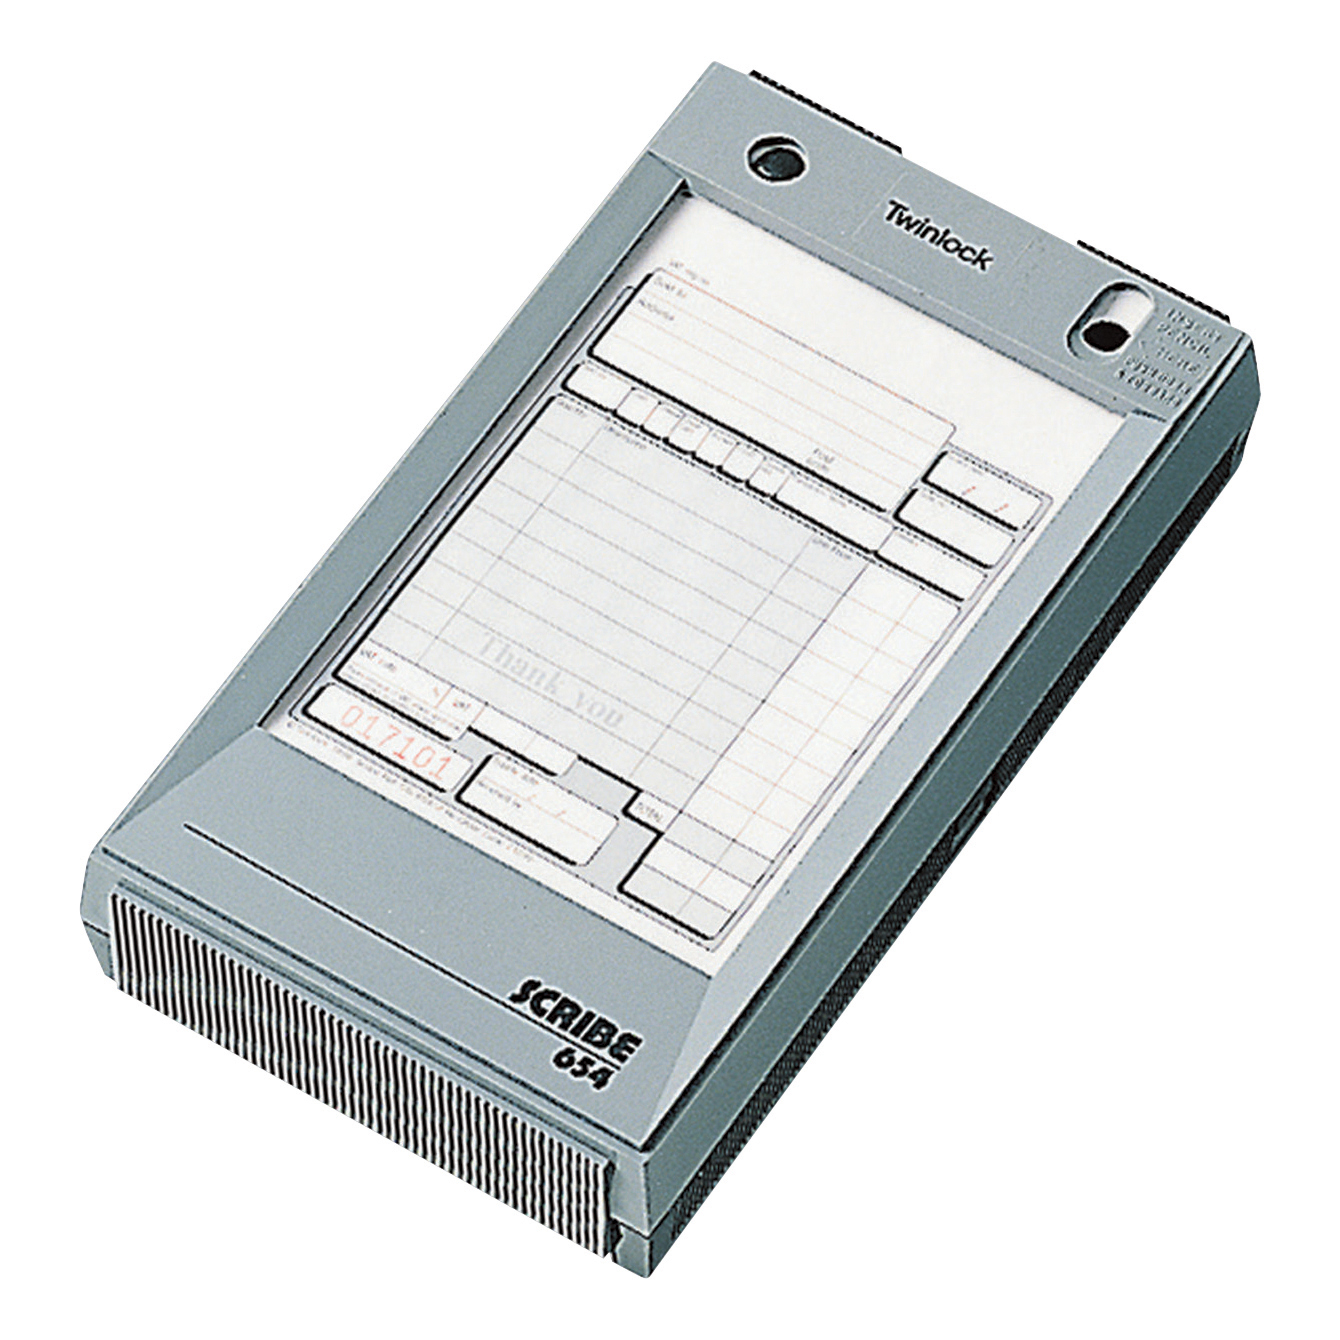 Twinlock Scribe 654 Scribe Register 210x115mm for Business Forms Ref 71000